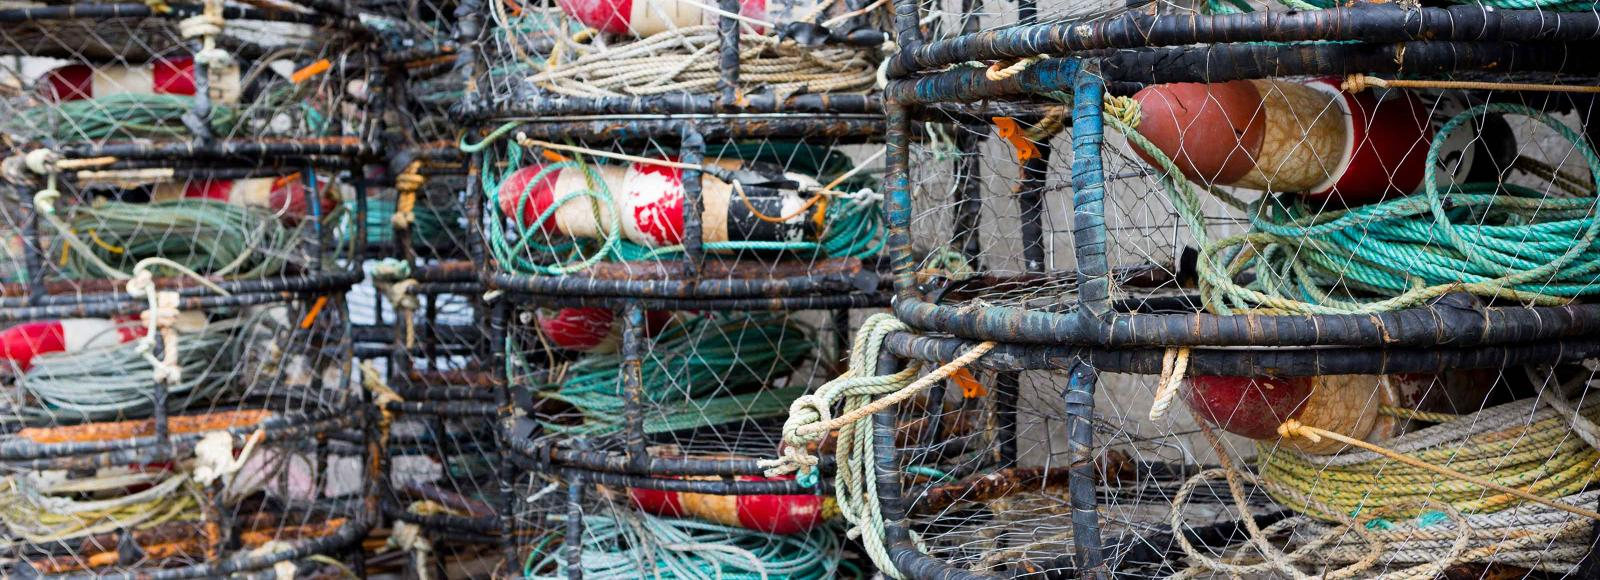 fishing ropes and baskets stacked up